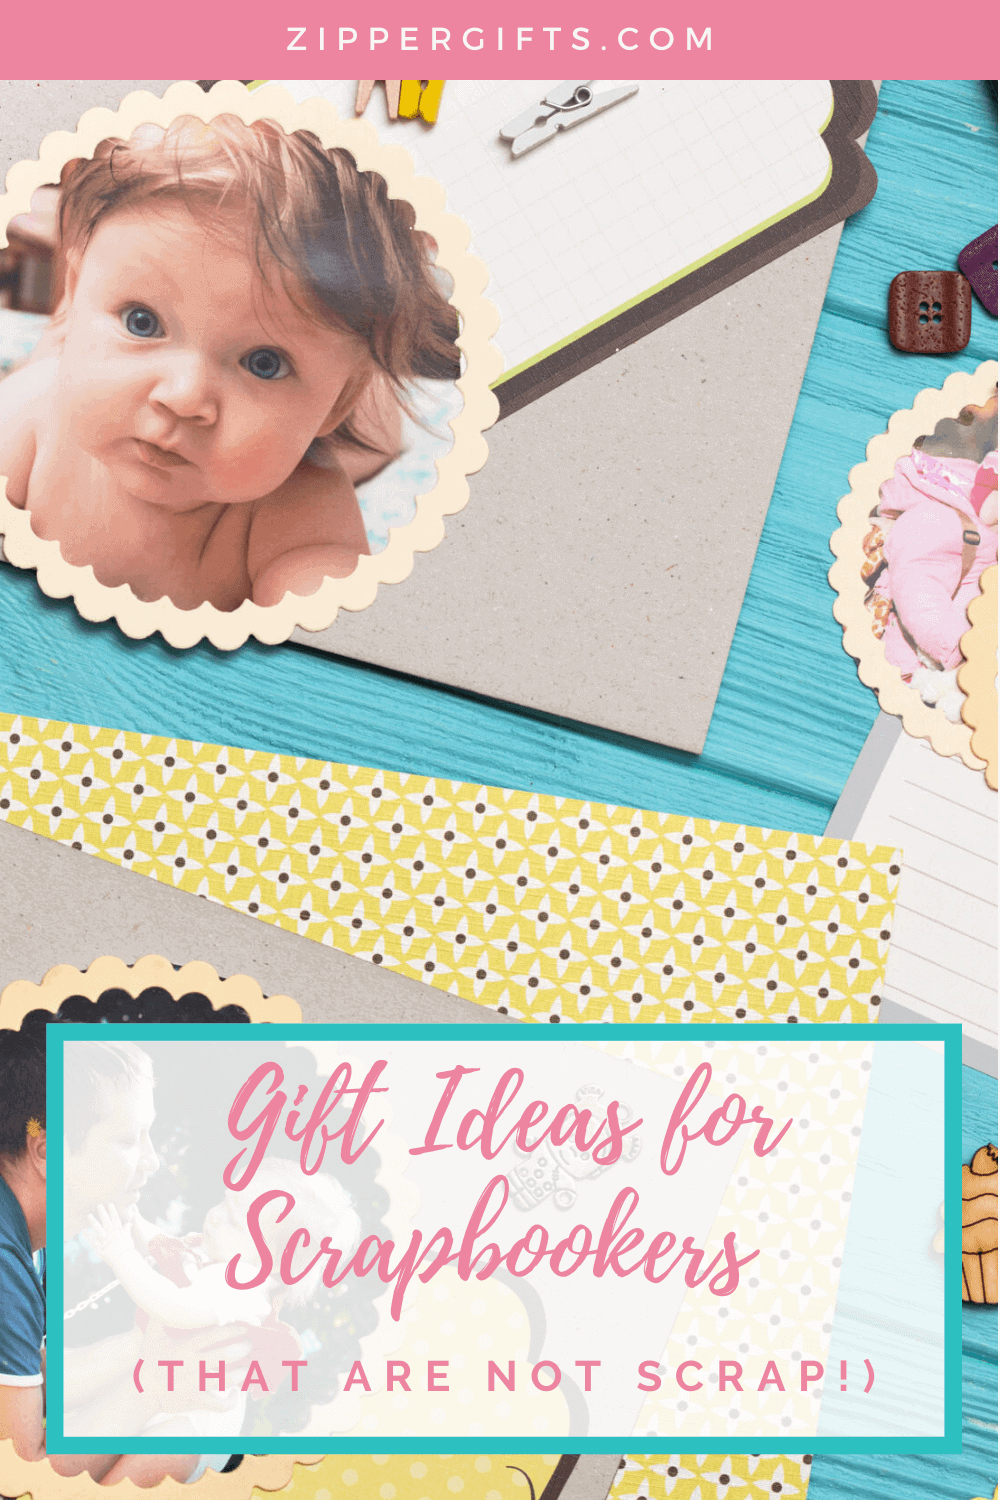 Gift Ideas For Scrapbookers (that Are Not Scrap!)